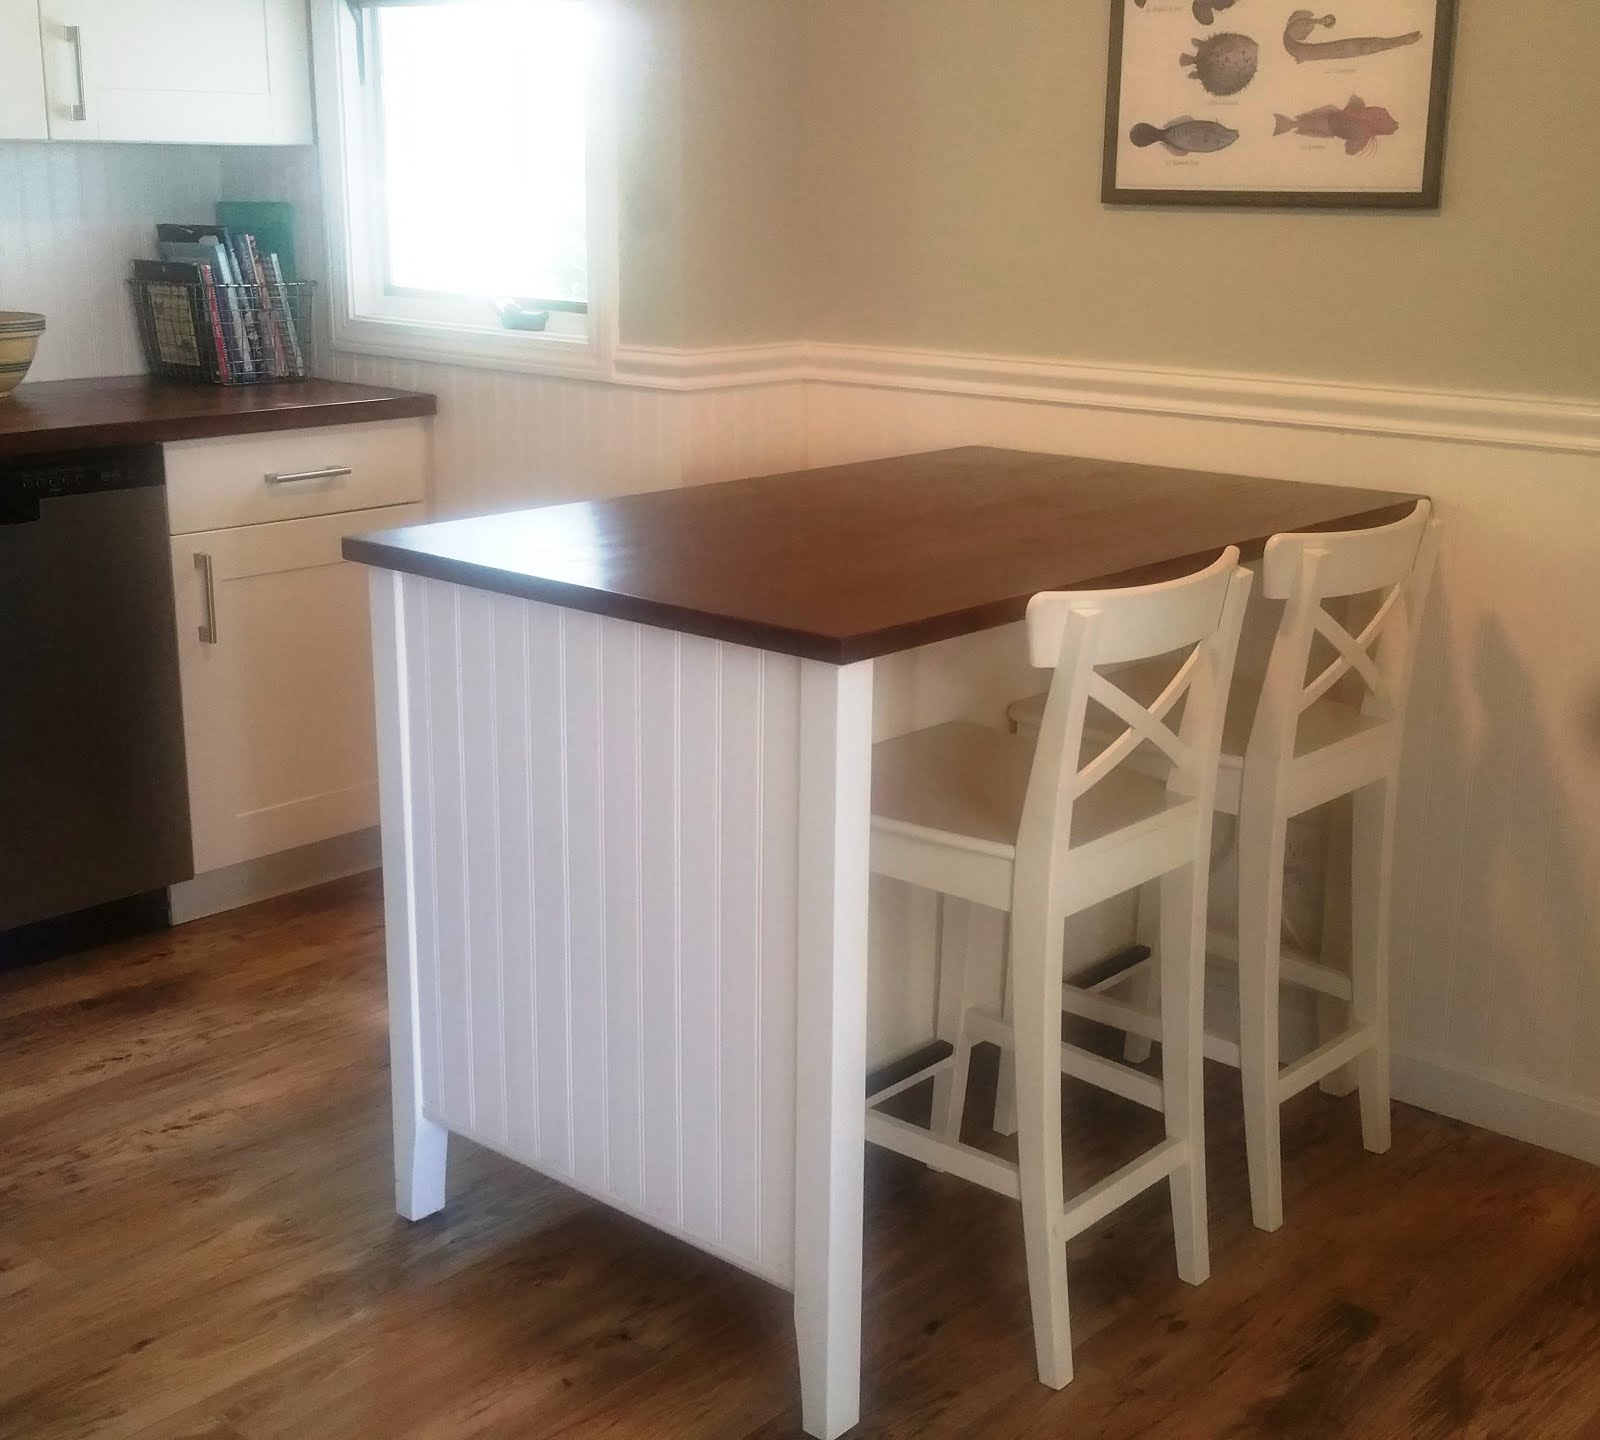 Kitchen Island Stools Ikea: Salt Marsh Cottage: Ikea Kitchen Island Hack